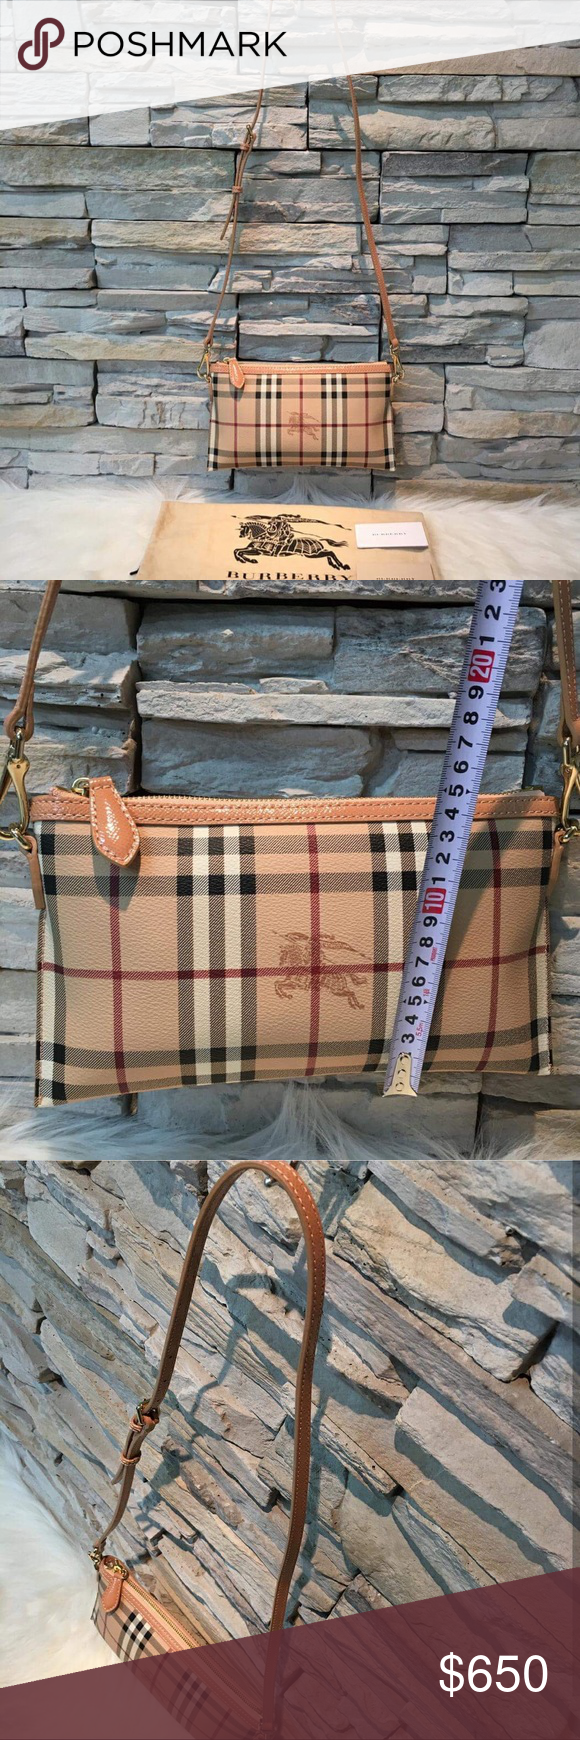 Authentic Burberry Sling AUTHENTIC Burberry Sling bag with dustbag and  card. Good as new. 51242a75bf